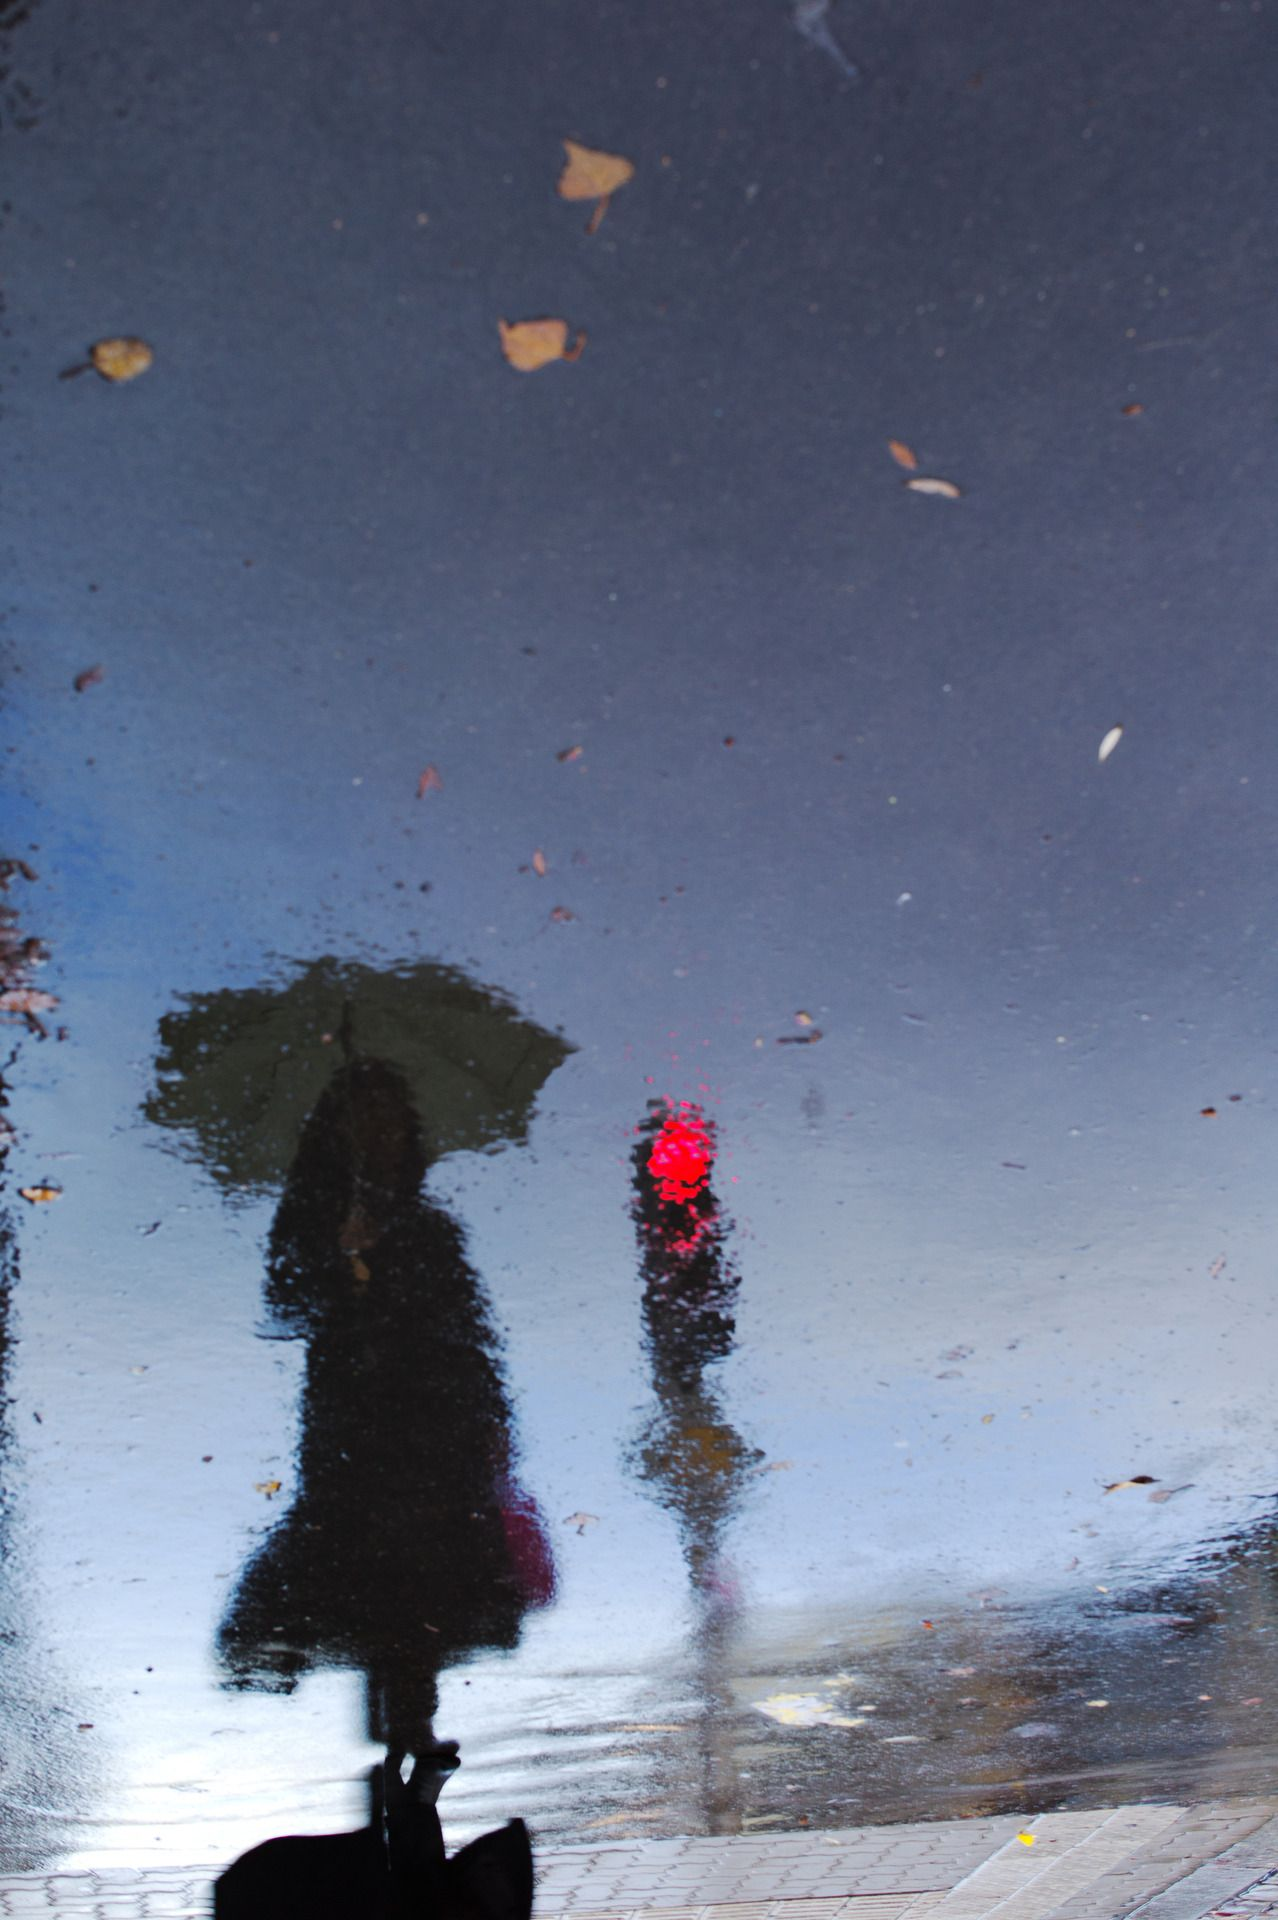 Pin by B e ll c a n t o on REFLECTIONs | Pinterest | Rain ... for Umbrella Photography Tumblr  584dqh